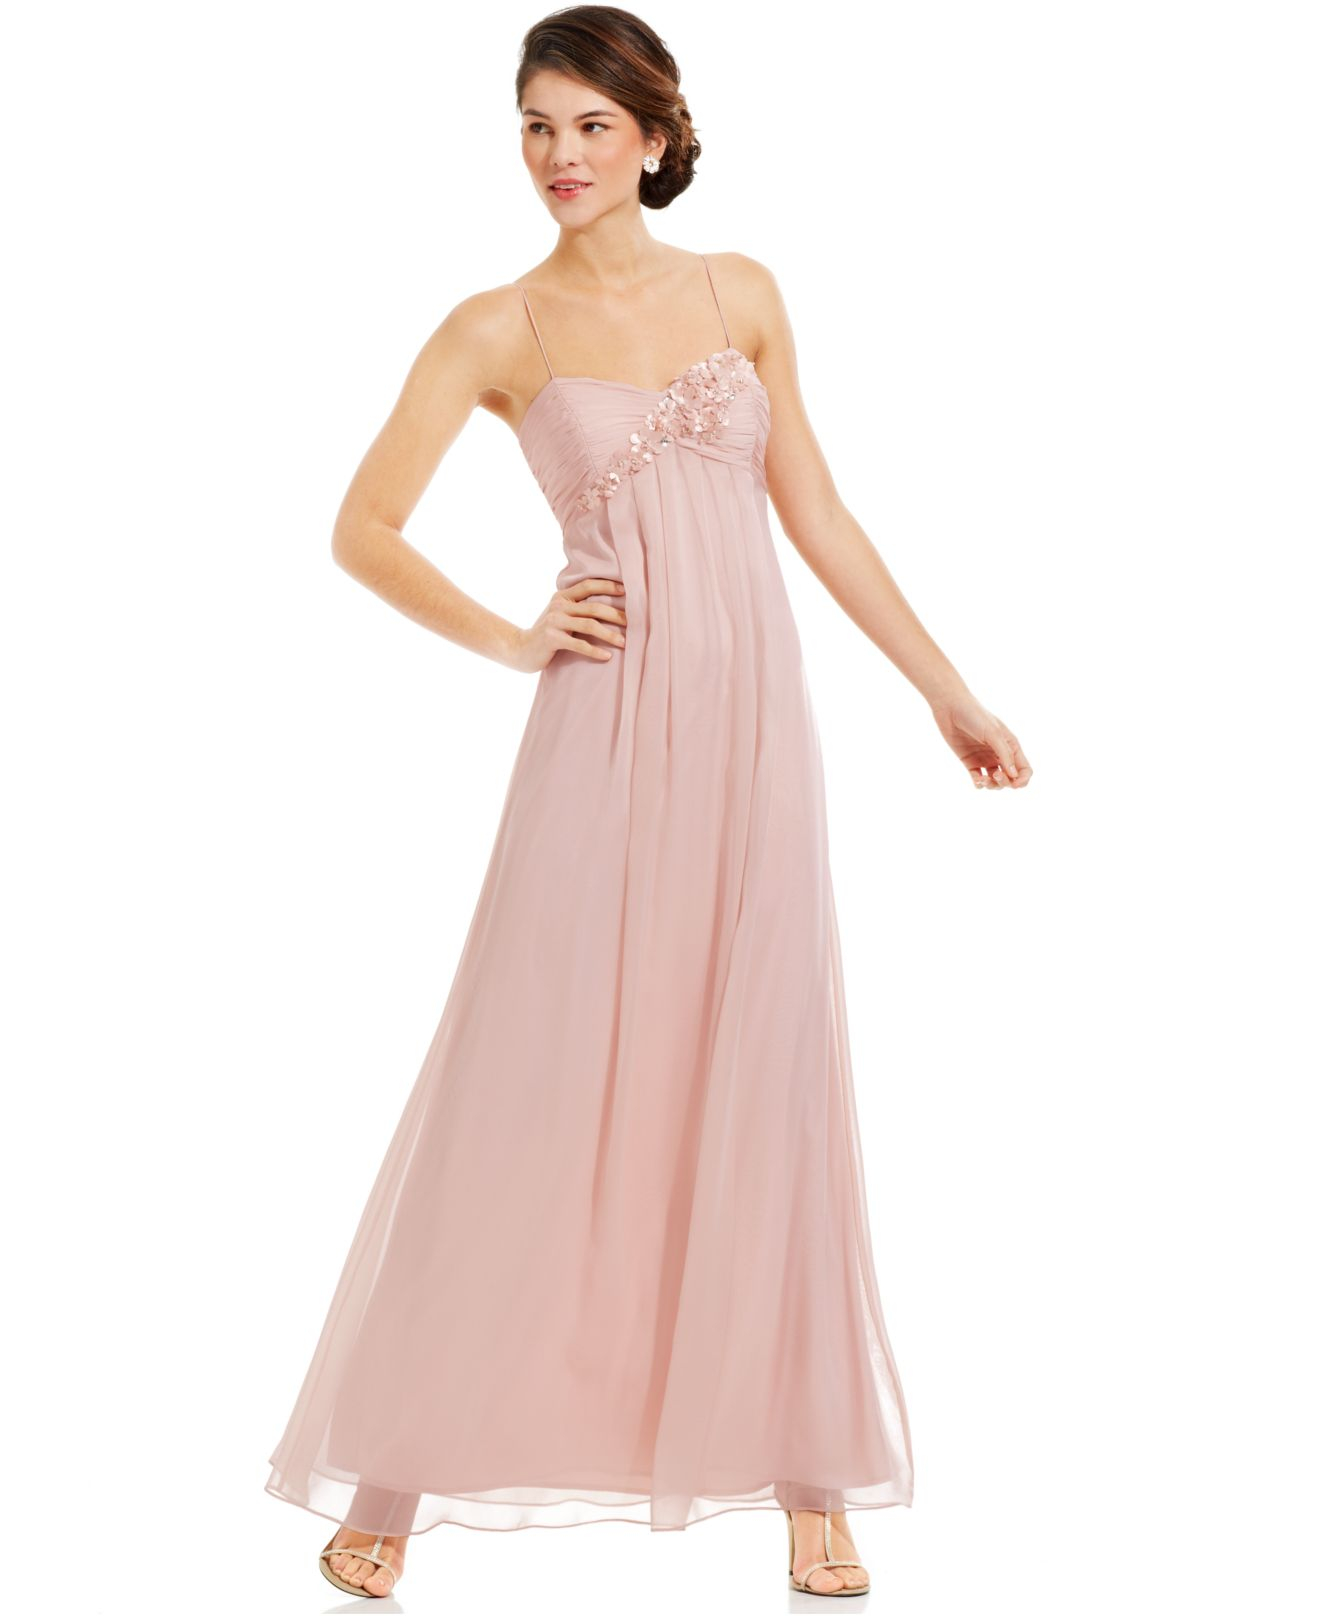 Lyst - Adrianna Papell Sleeveless Floral-applique Gown in Pink